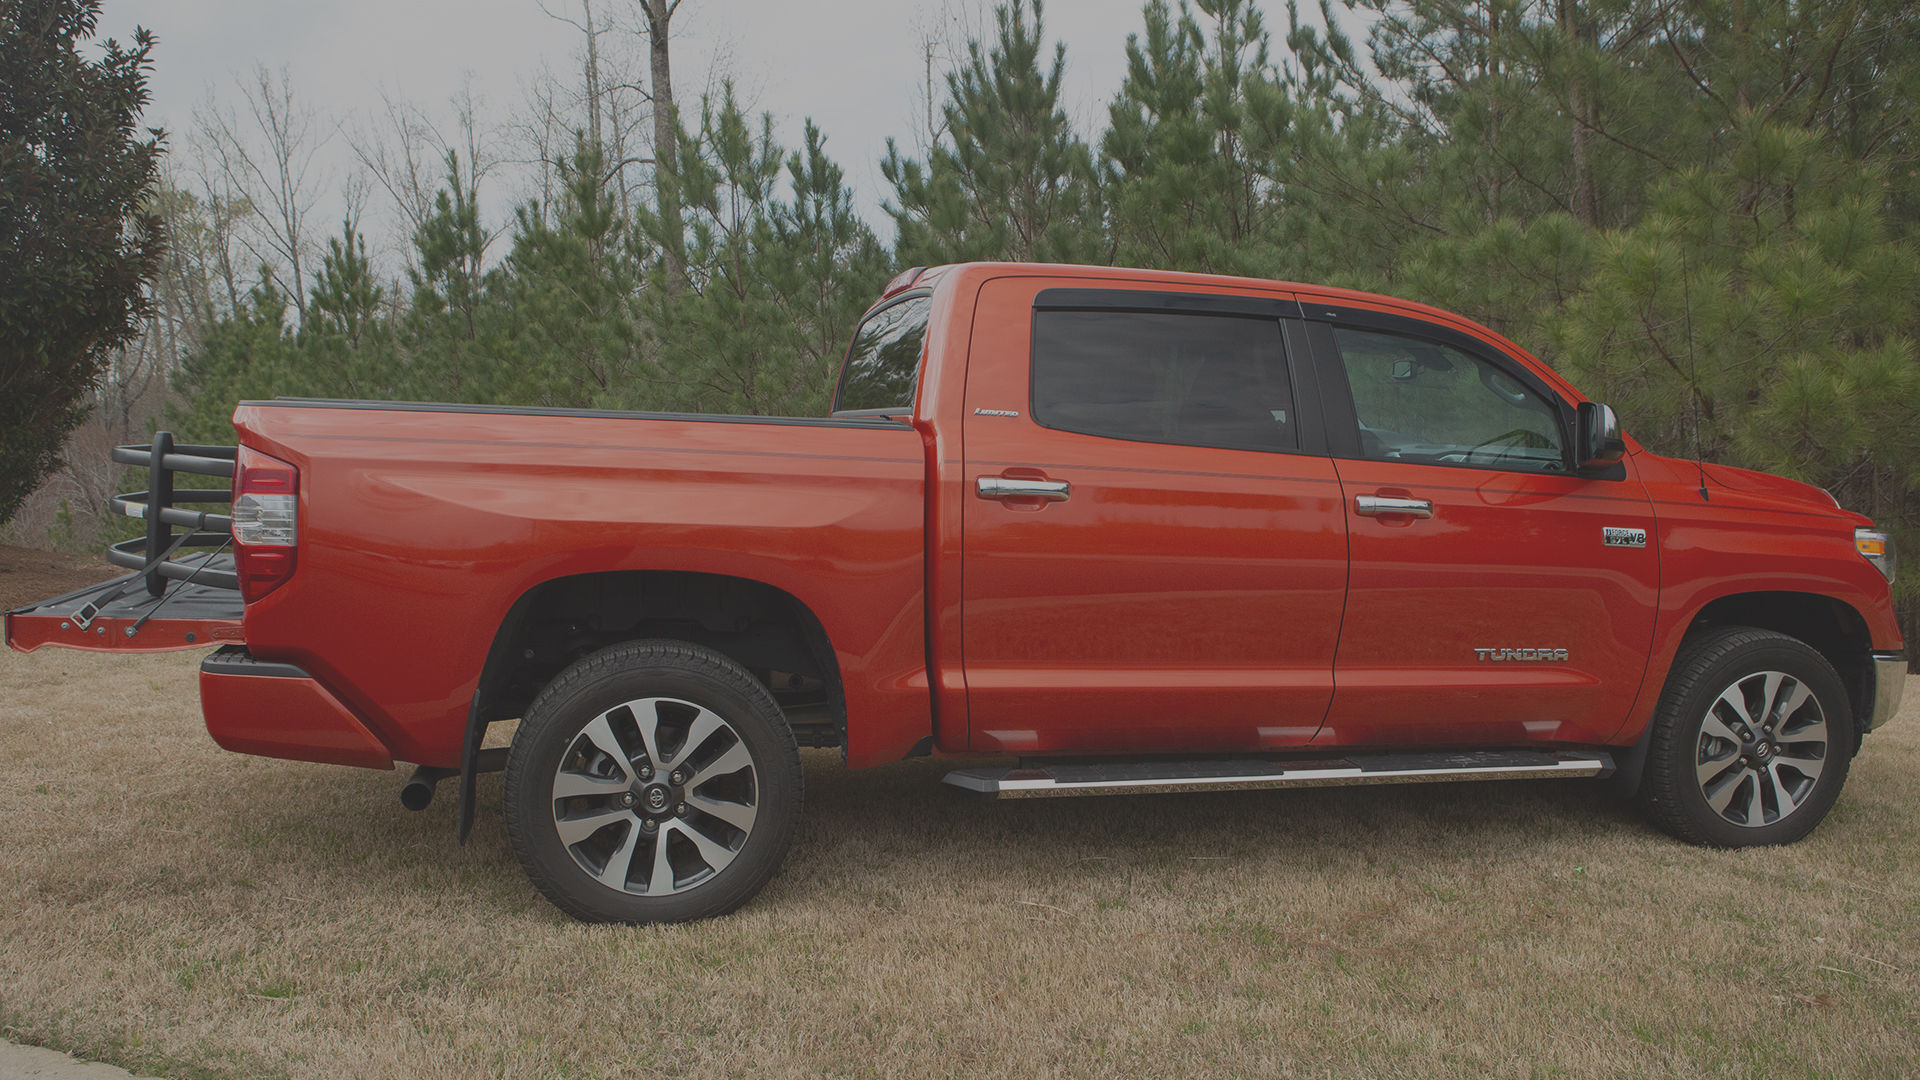 Toyota Tundra Running Boards Best Power Side Steps Bed Steps Truck Bed Extenders For Toyota Tundra Amp Research